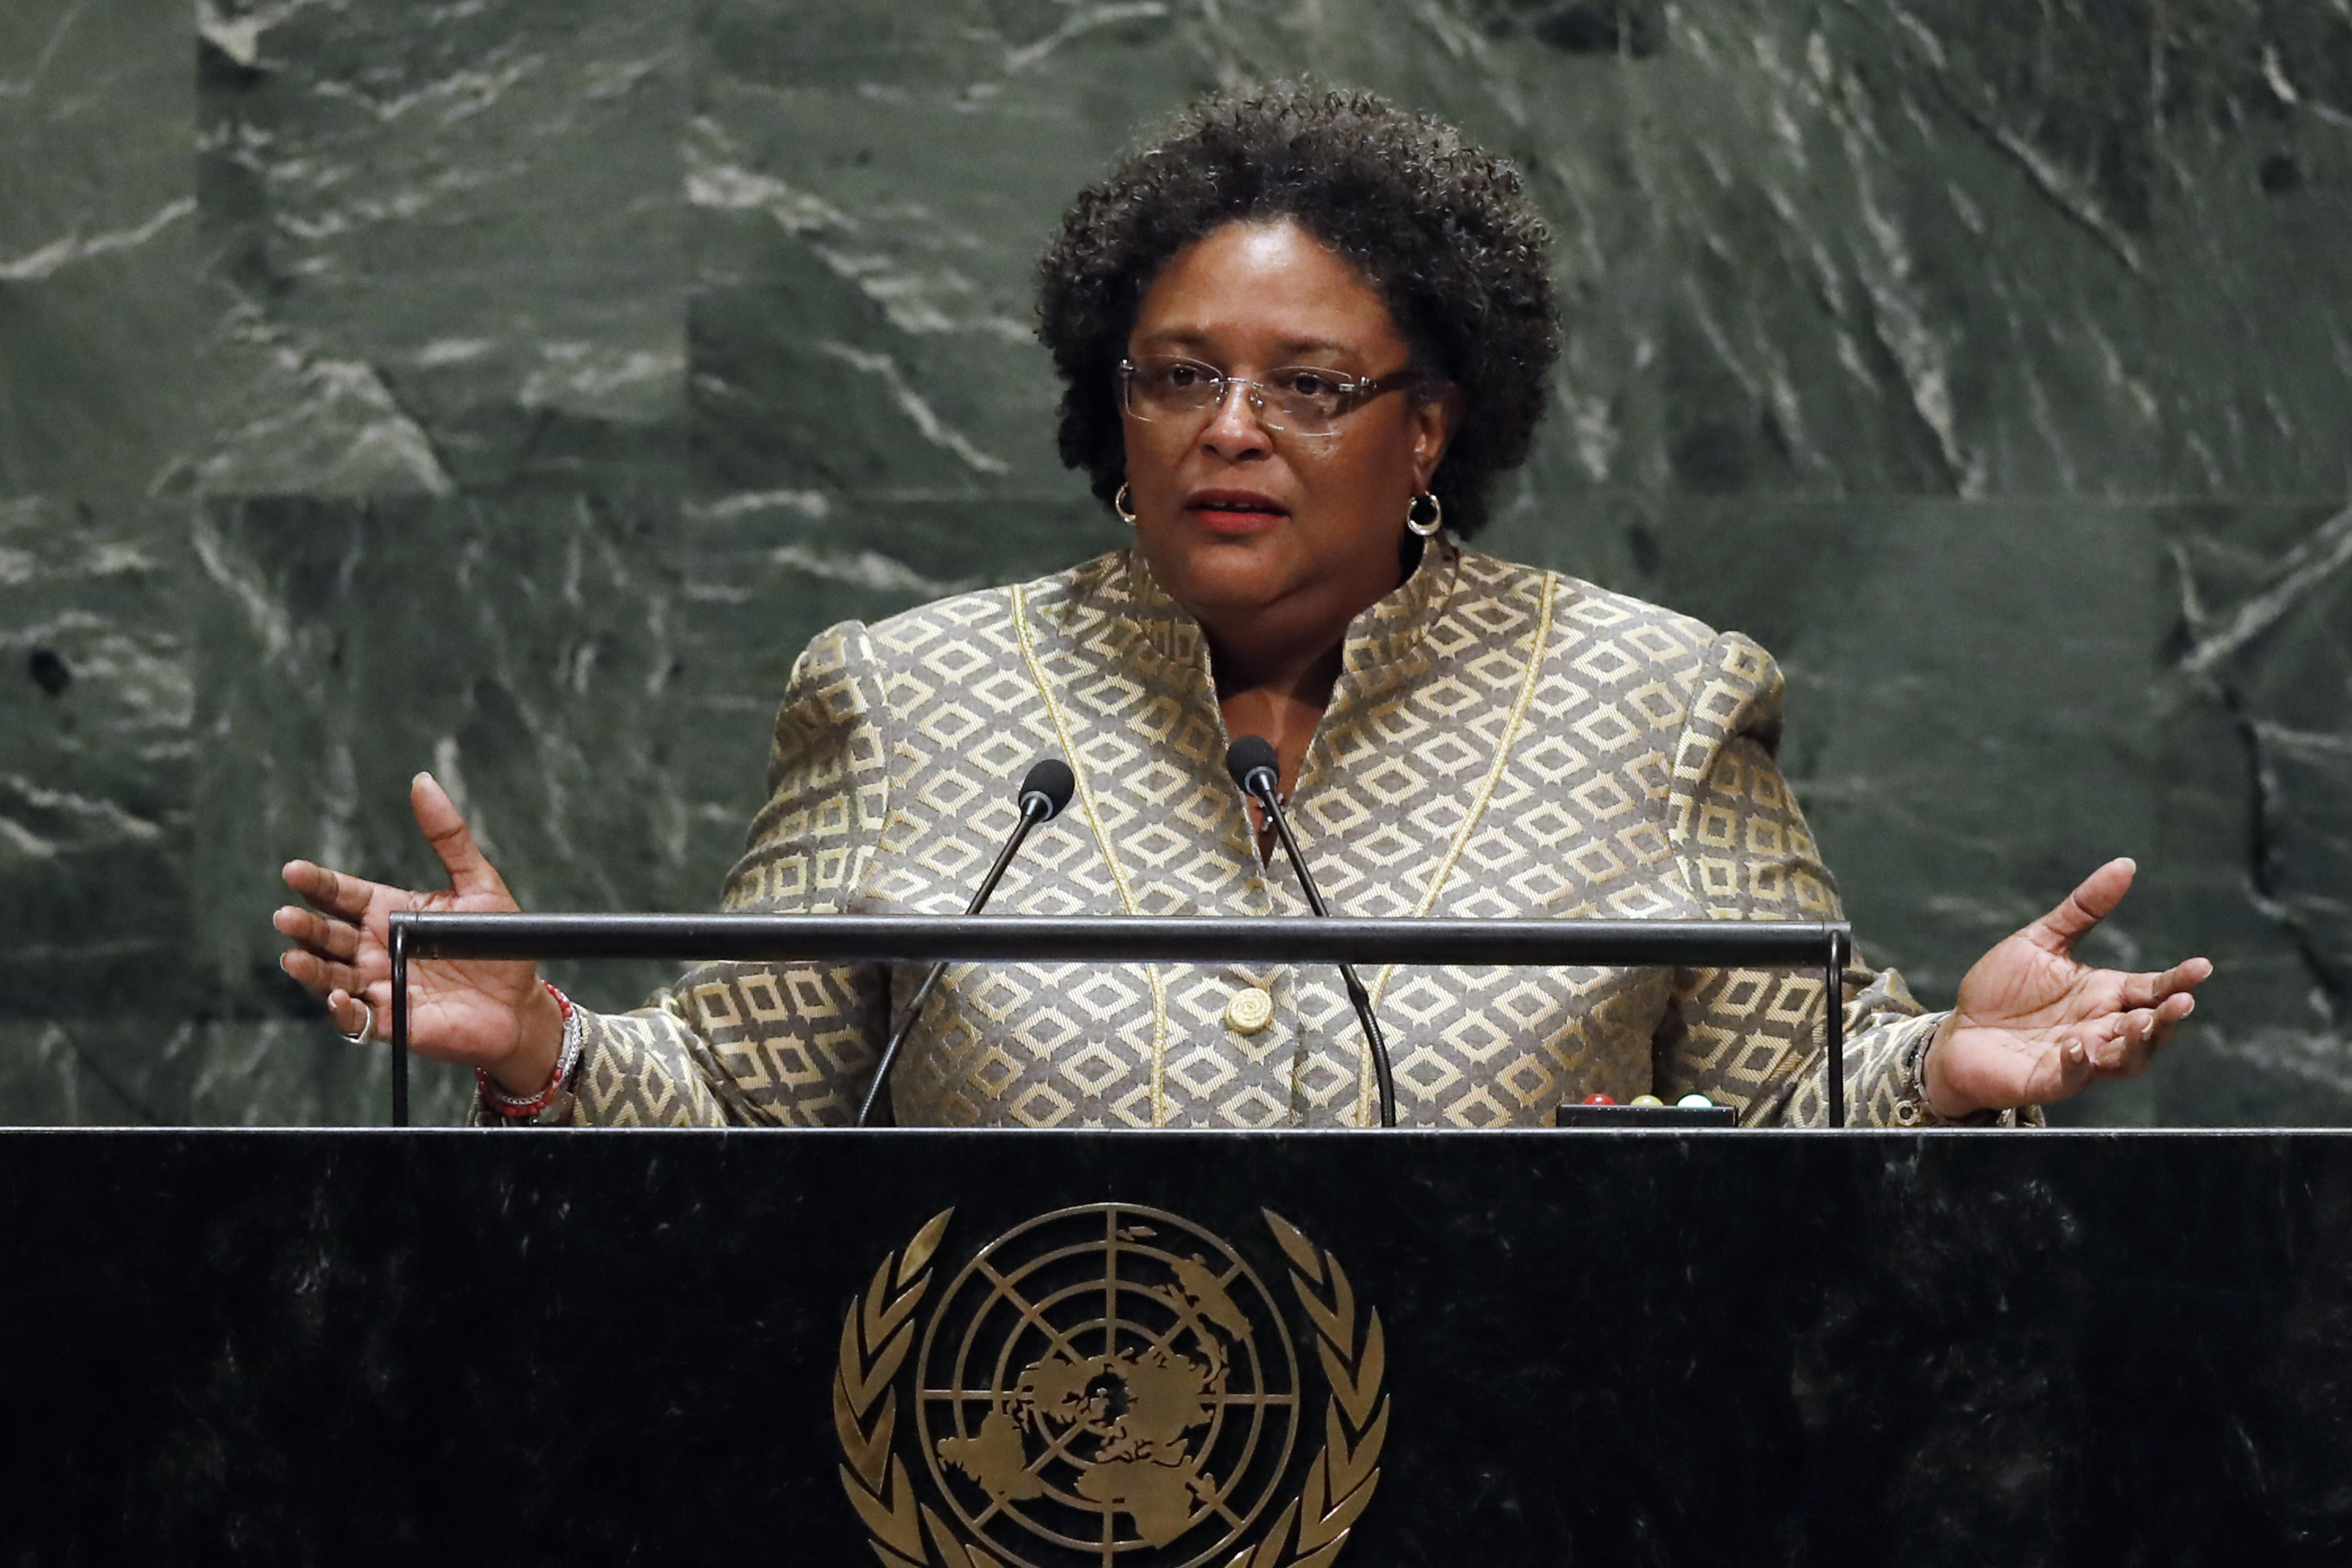 FILE - This Sept. 27, 2019, file photo shows Prime Minister Mia Amor Mottley, of Barbados, addressing the 74th session of the United Nations General Assembly. This year, in the pandemic era, the spectacle of the U.N. General Assembly is still happening at the United Nations, but remotely by video. (AP Photo/Richard Drew, File)